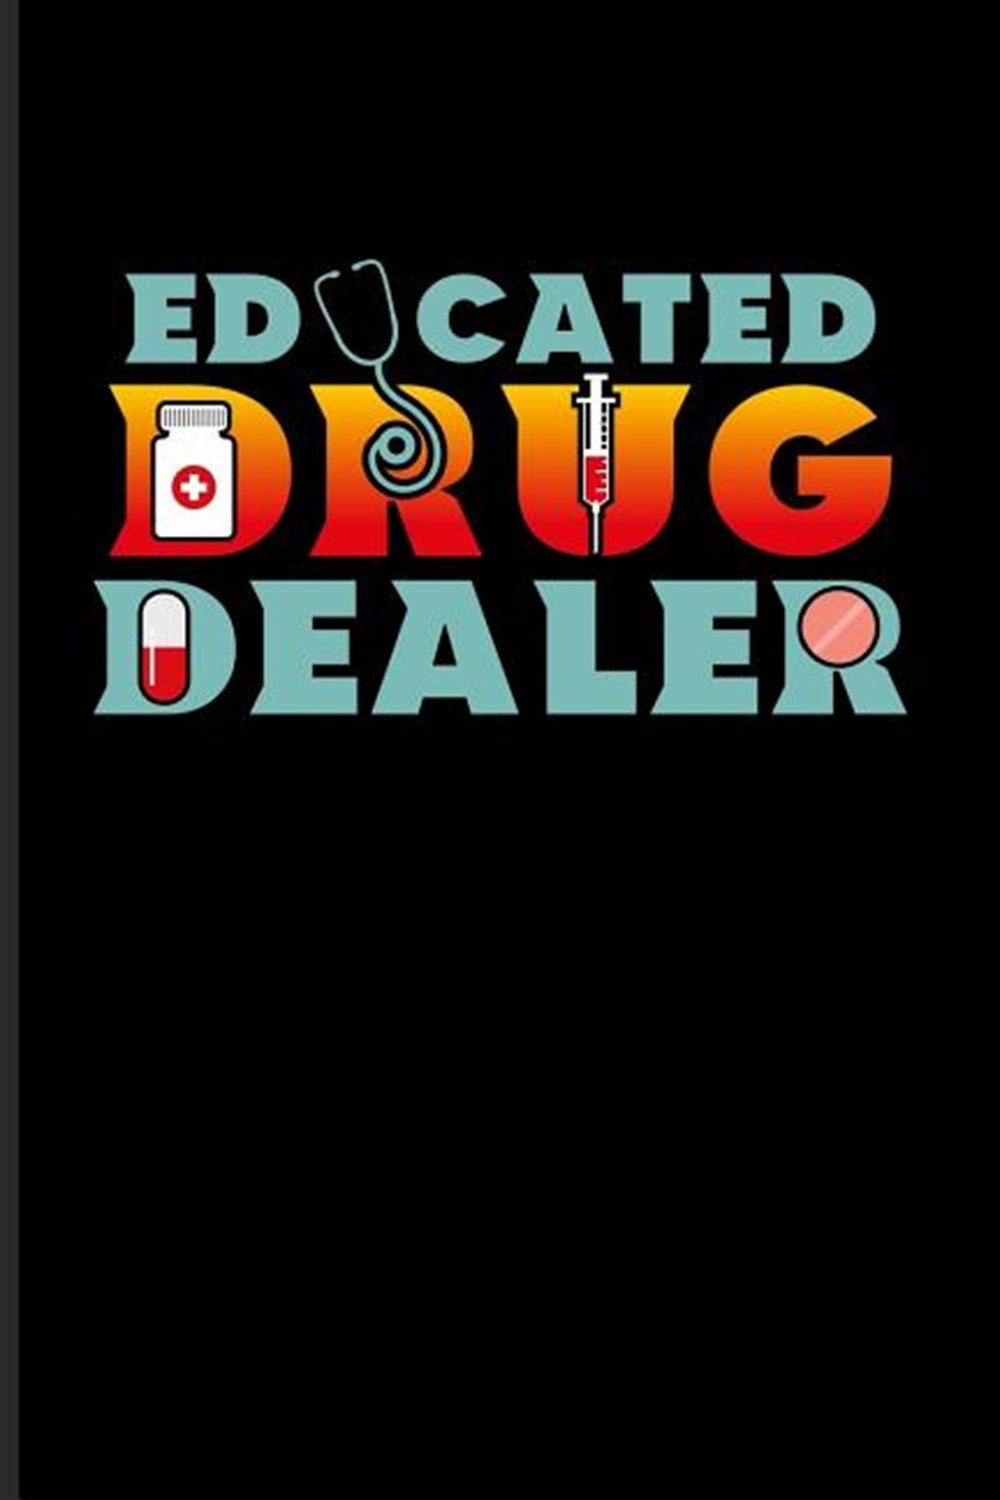 Educated Drug Dealer Funny Pharmacy Sayings Journal For Medication, Pharmacology, Technician, Health